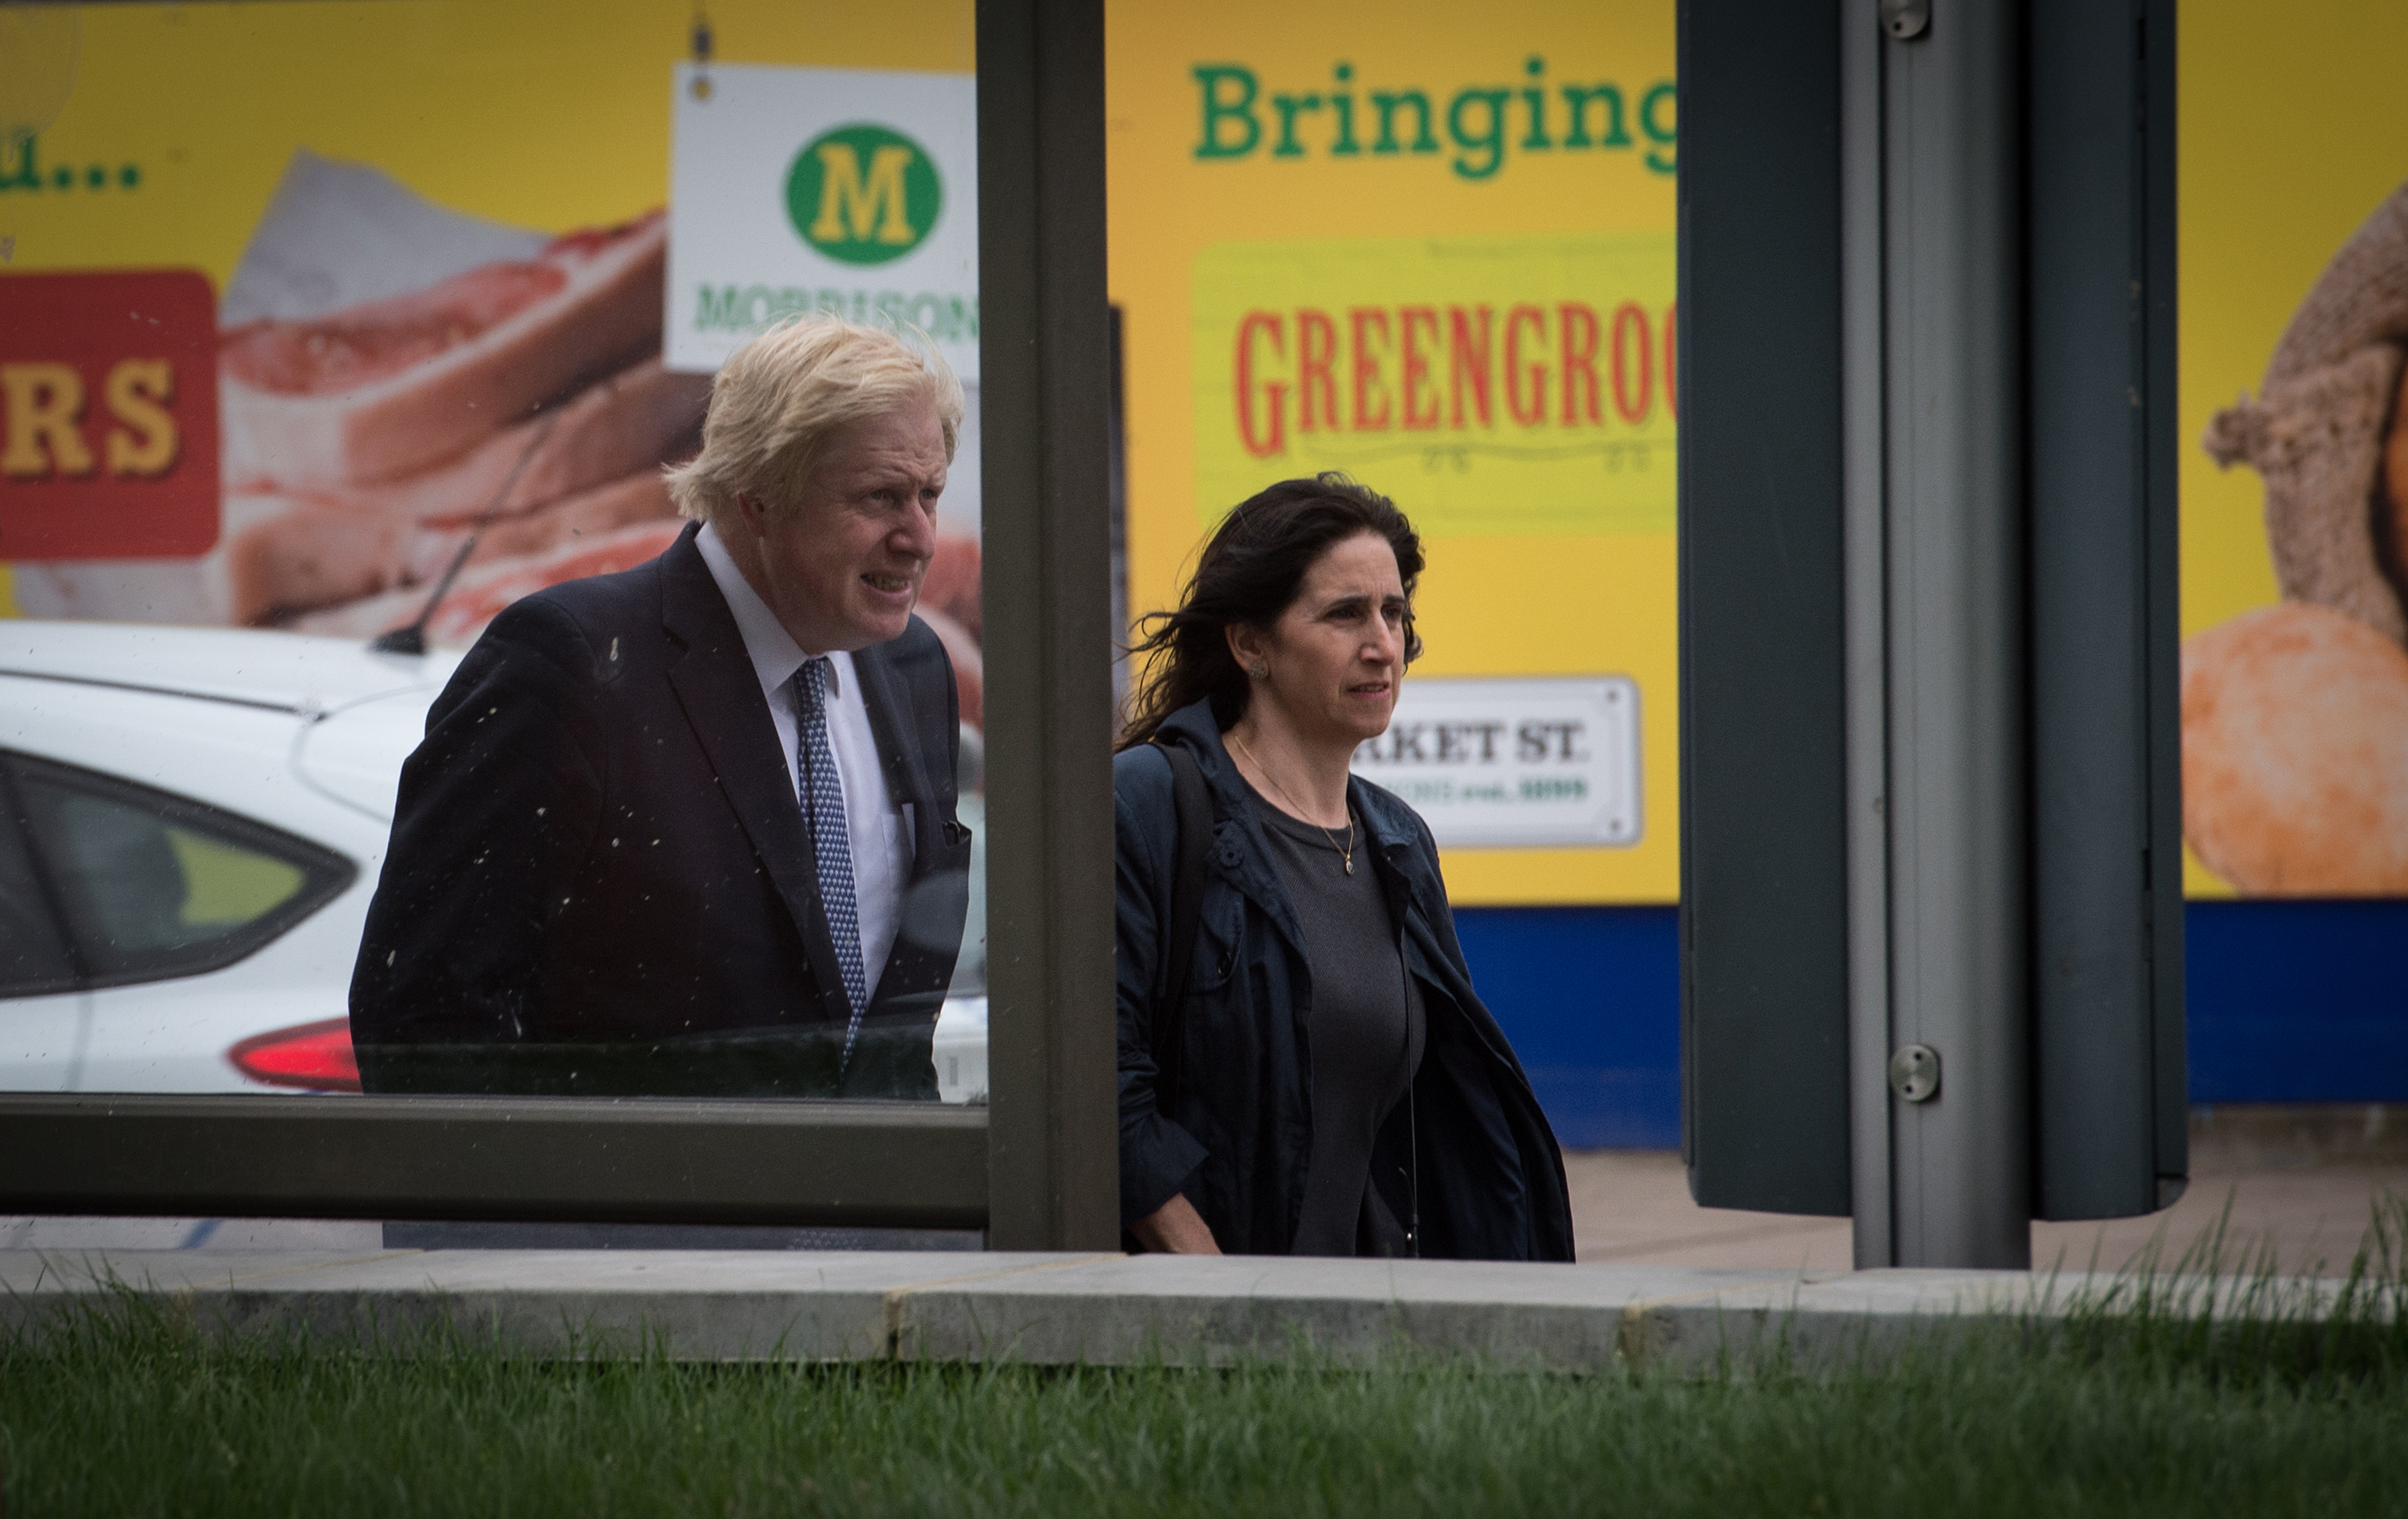 Mayor of London Boris Johnson and his wife Marina arrive at Utility Warehouse in Hendon for a Q&A with Prime Minister David Cameron while on the General Election campaign trail.